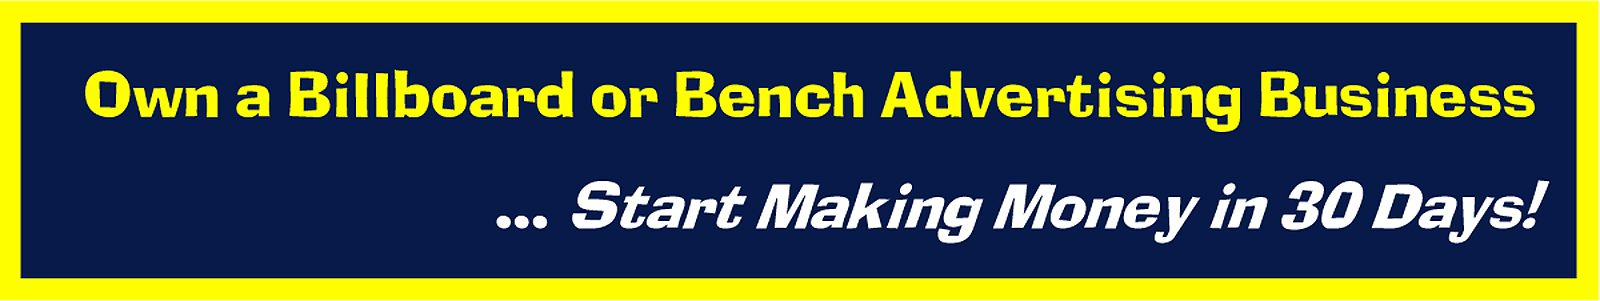 Own A Billboard or Bench Advertising Business